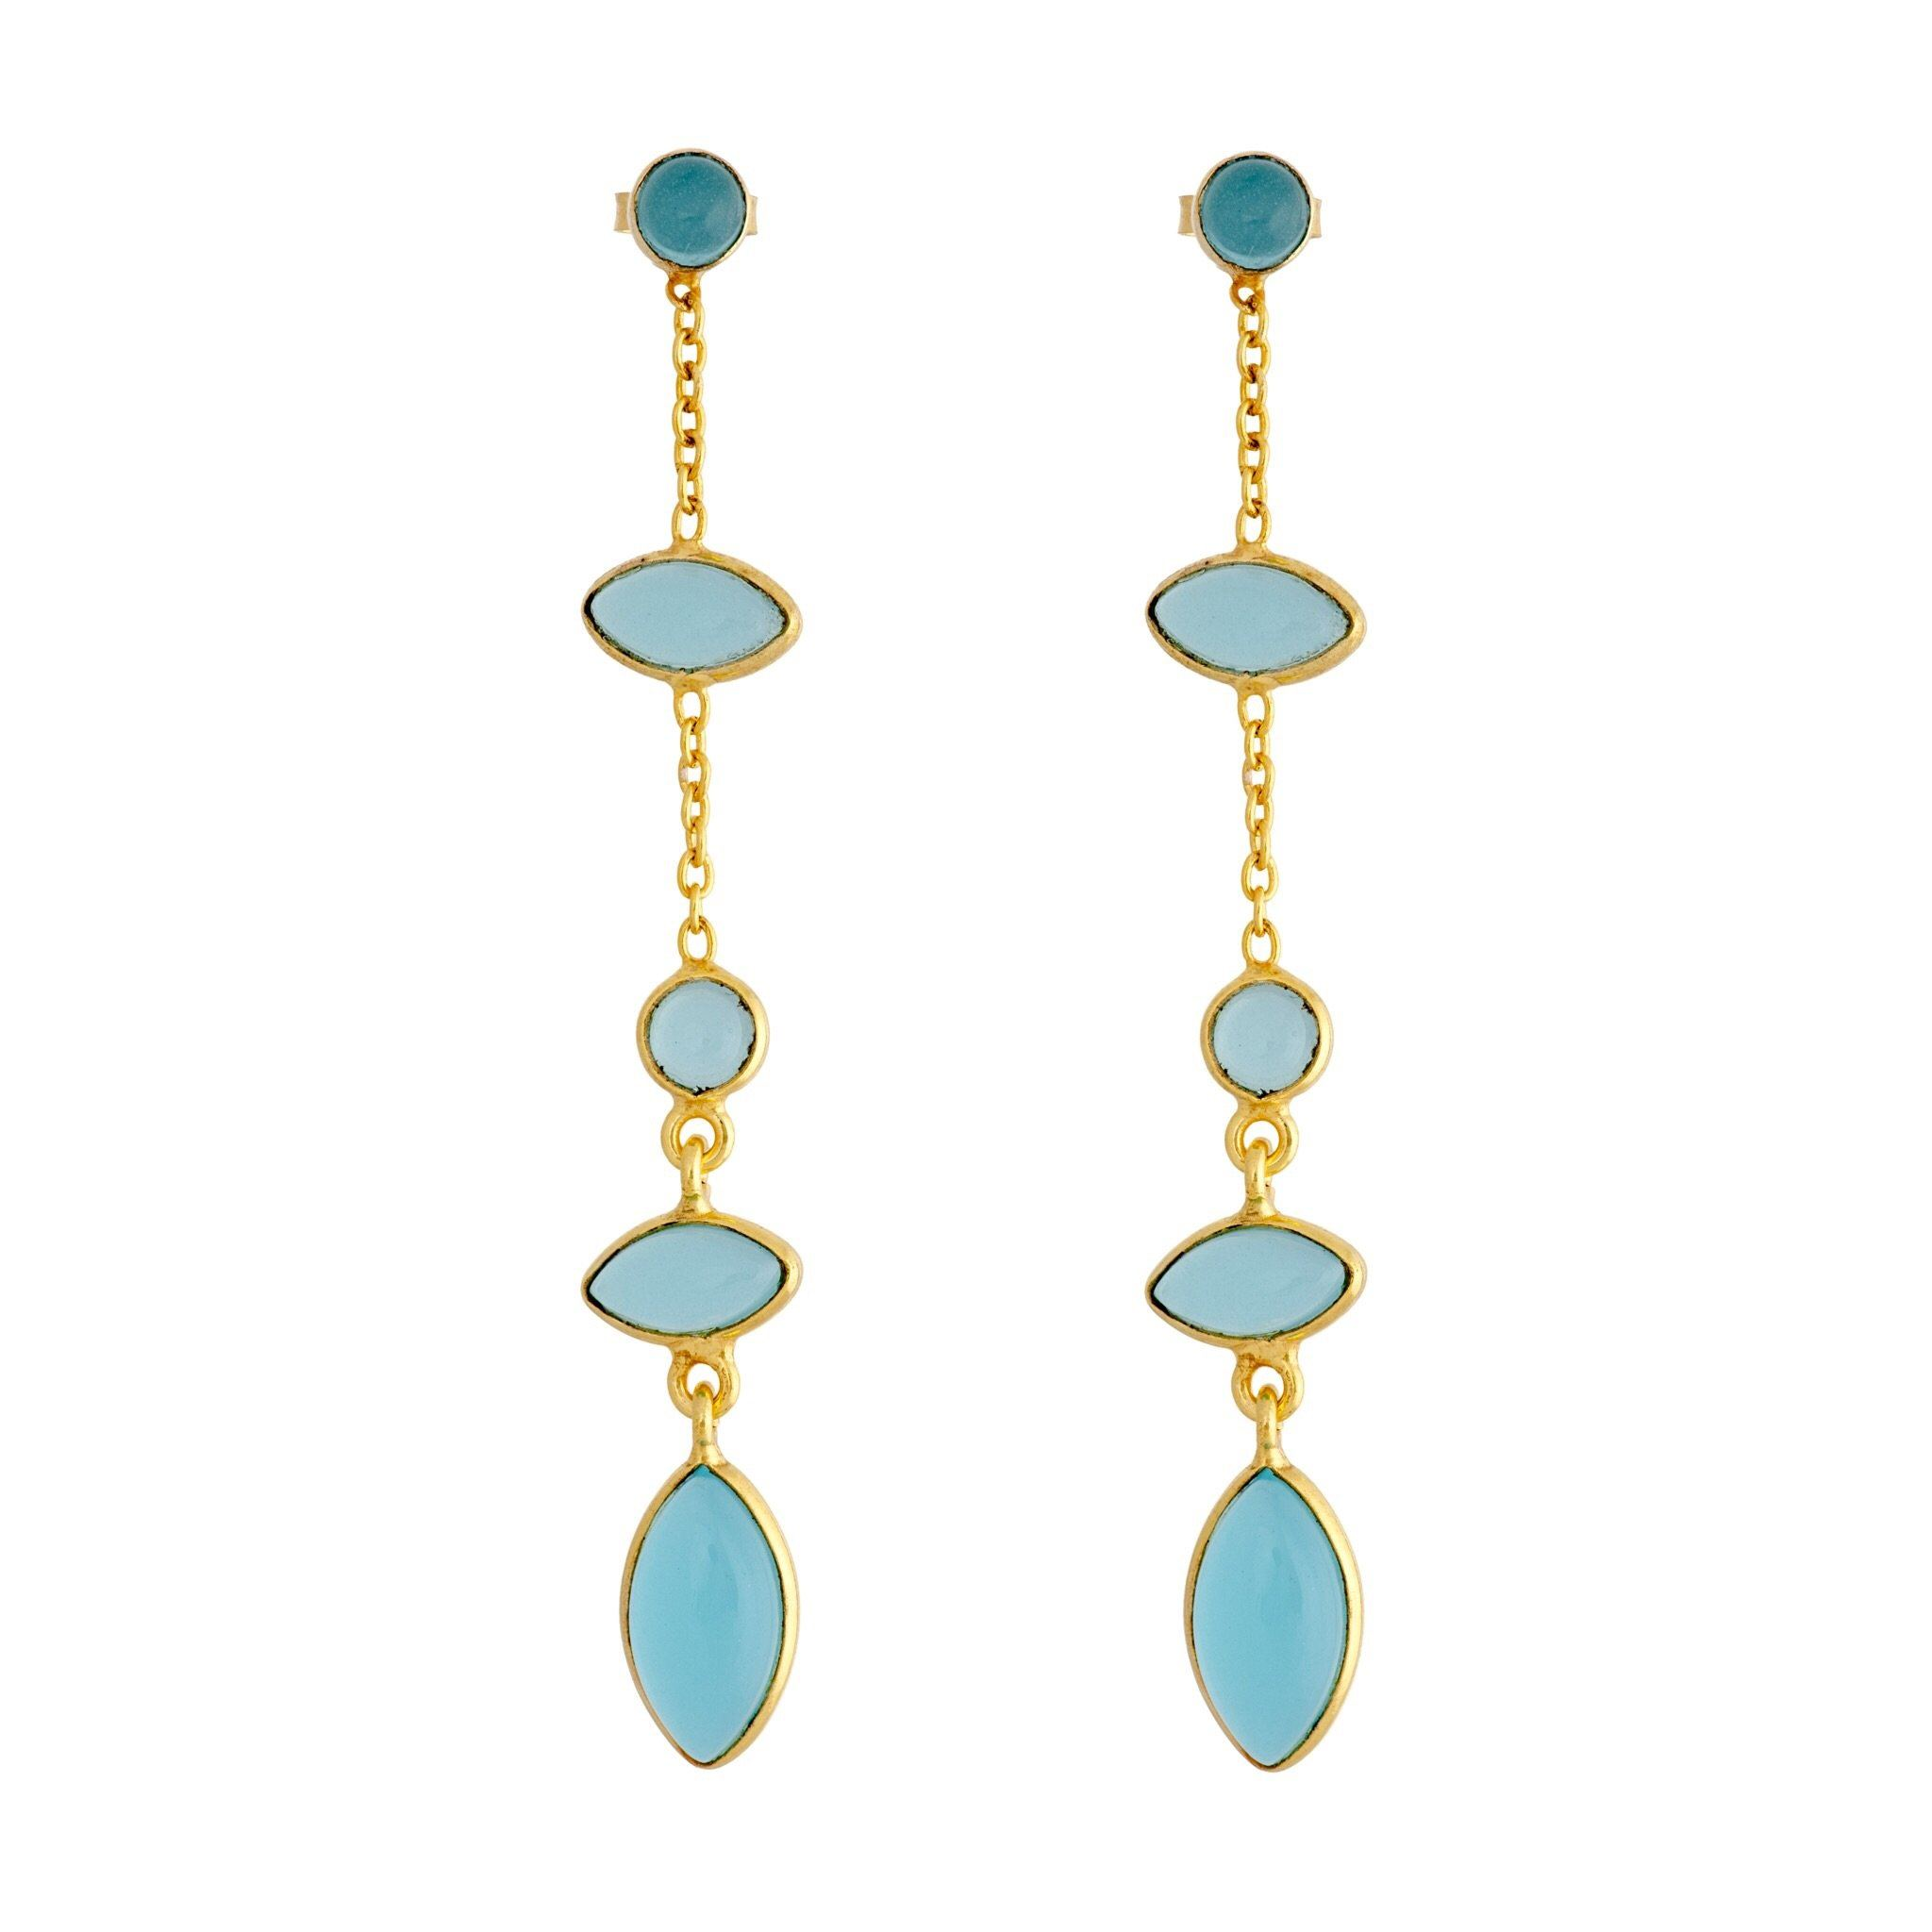 TA blue chalcedony earrings